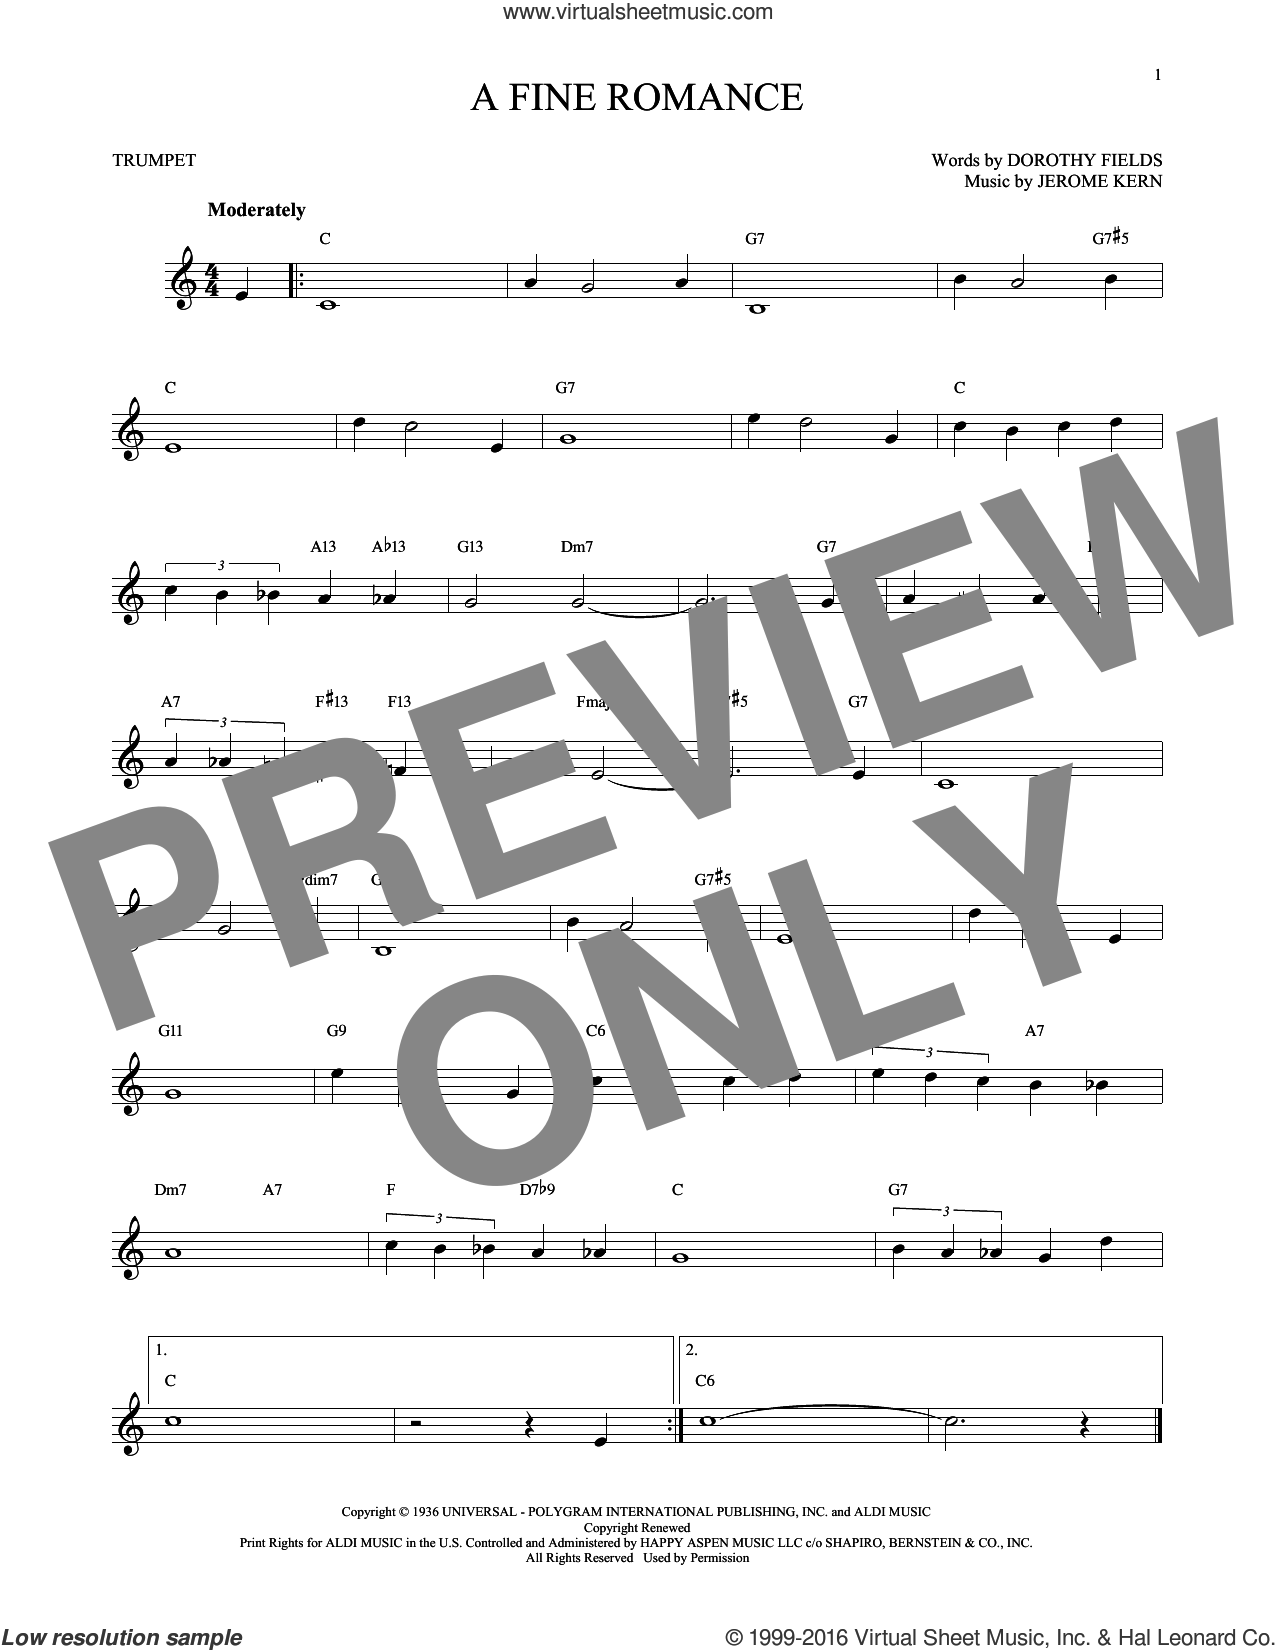 A Fine Romance sheet music for trumpet solo by Jerome Kern and Dorothy Fields, intermediate skill level